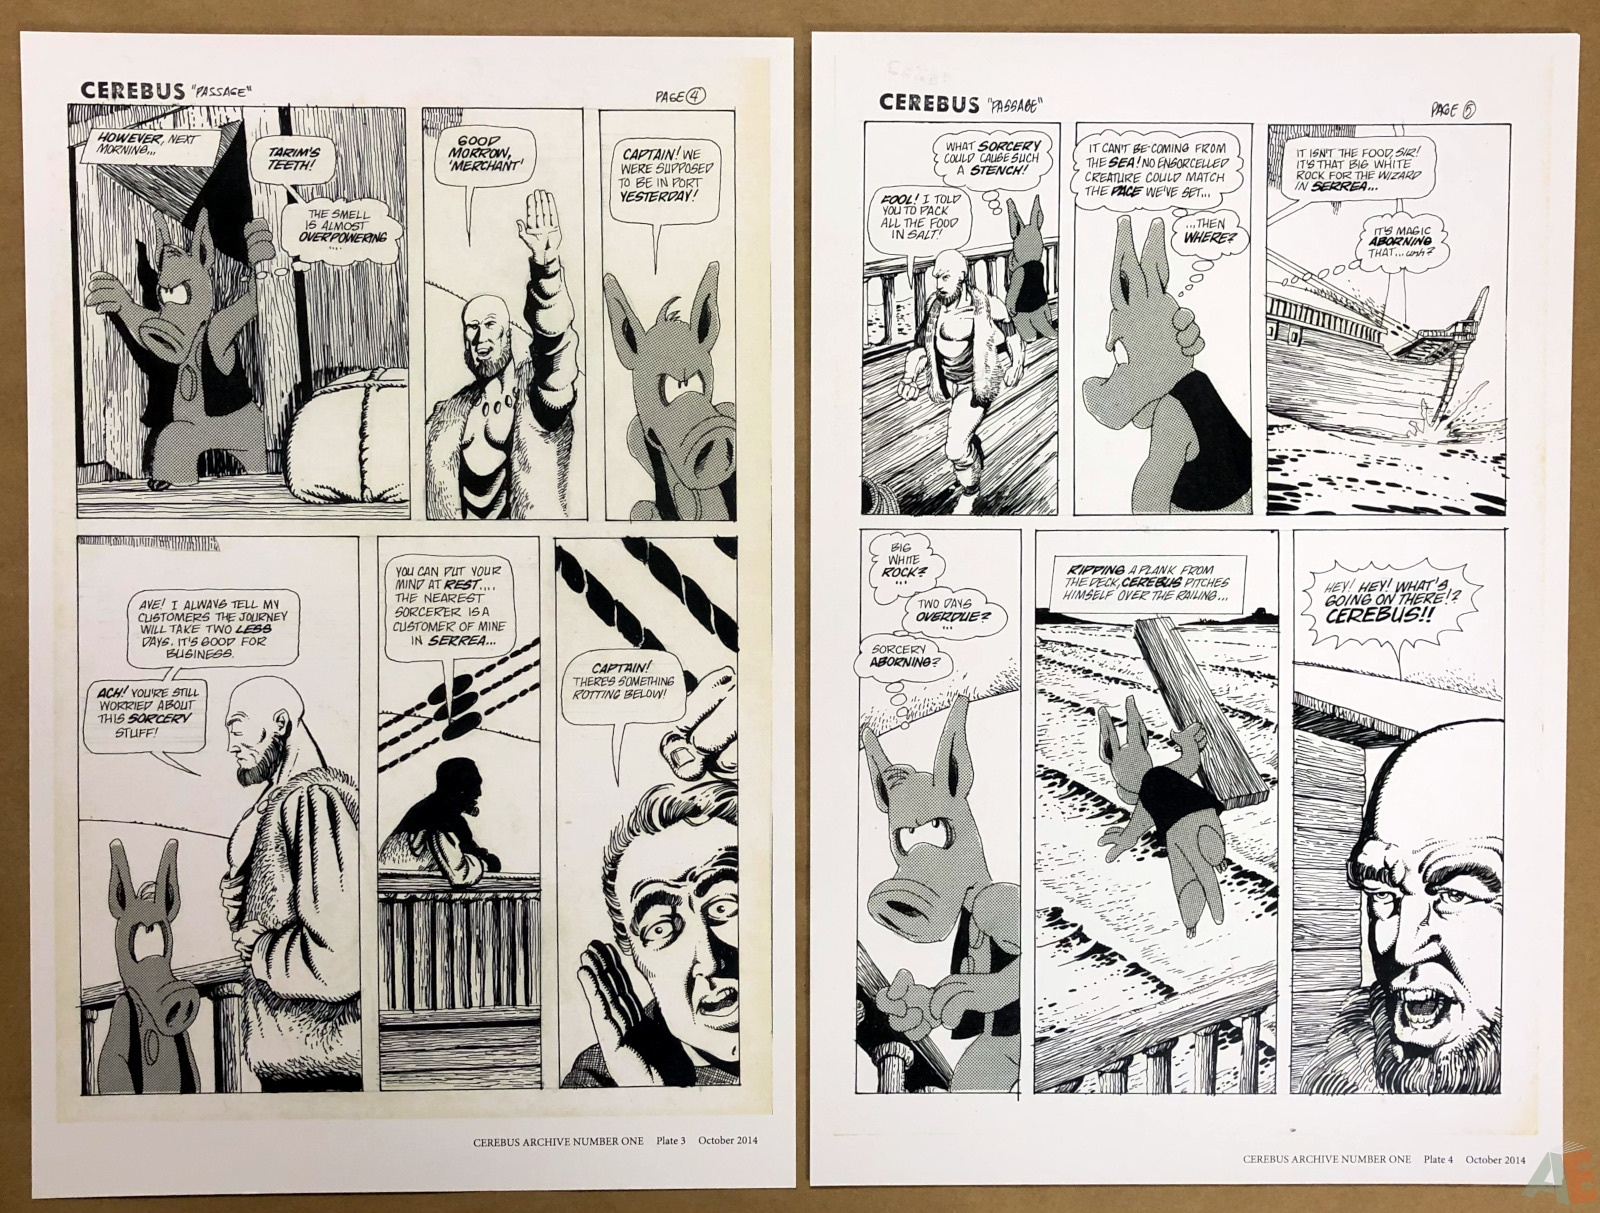 Cerebus Archive Number One